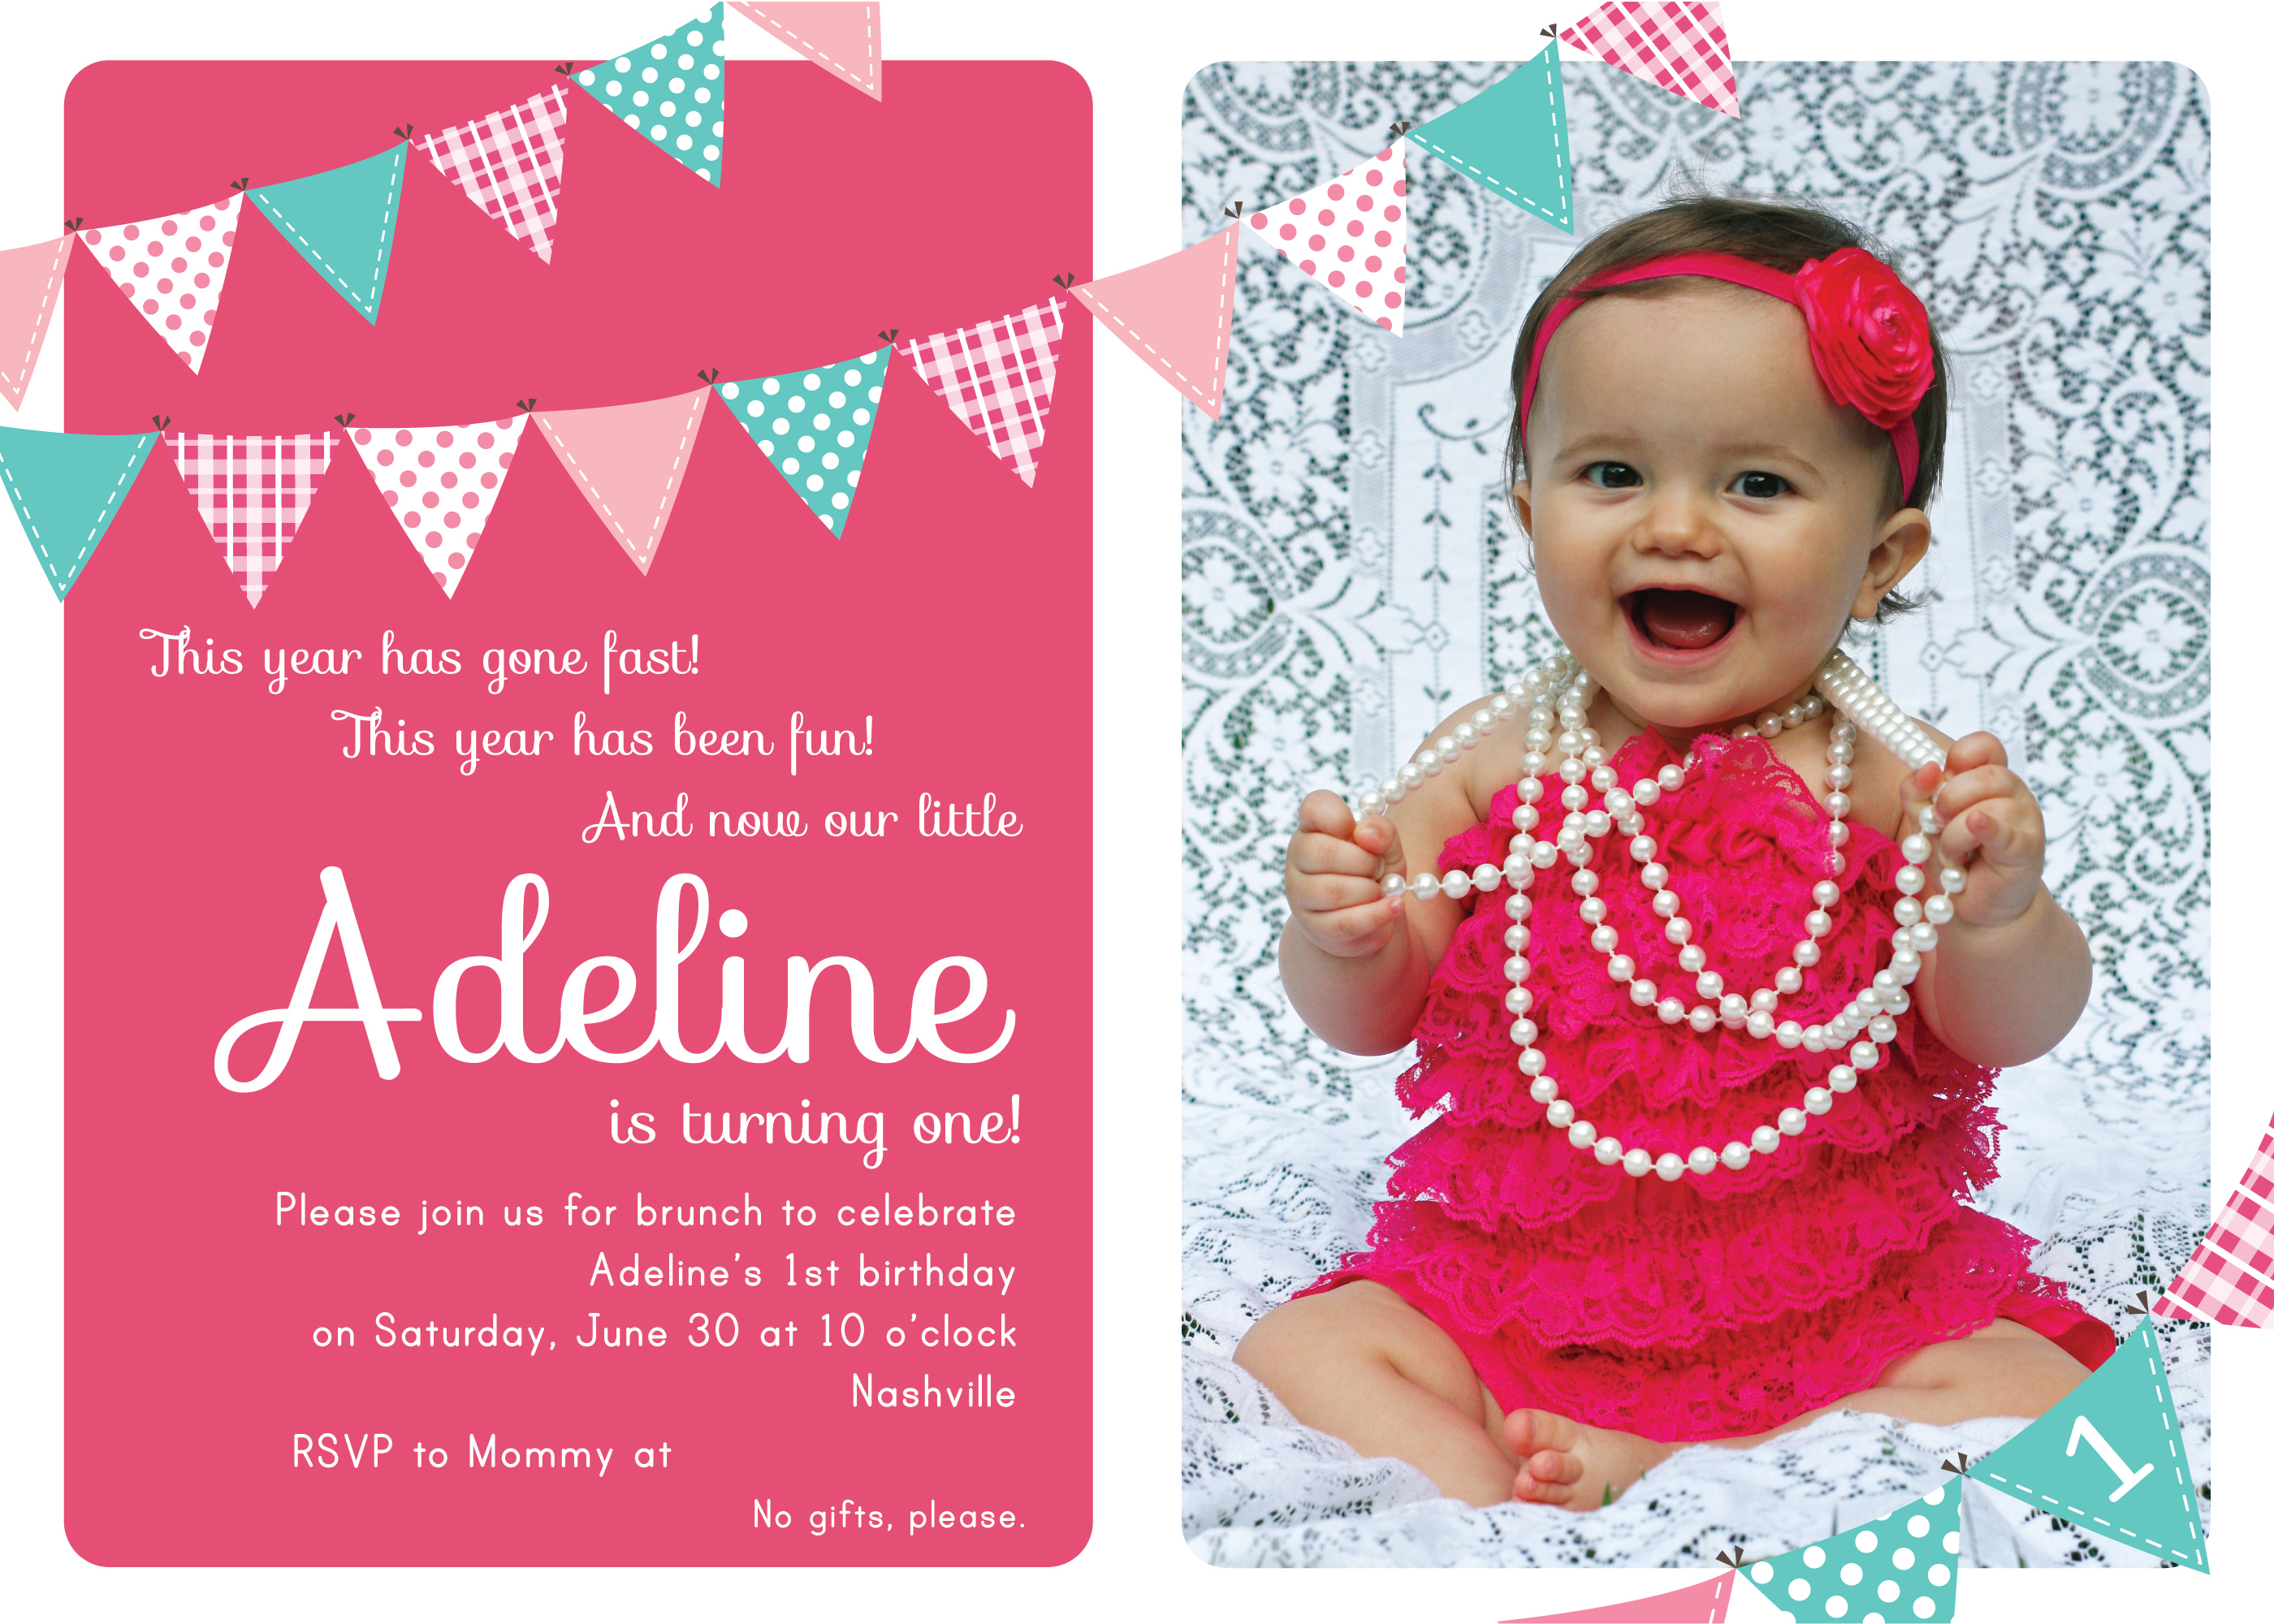 1st birthday banner design ; the-first-birthday-invitations-girl-free-with-alluring-layout-best-first-birthday-invitations-girl-designs-ideas-silverlininginvitations